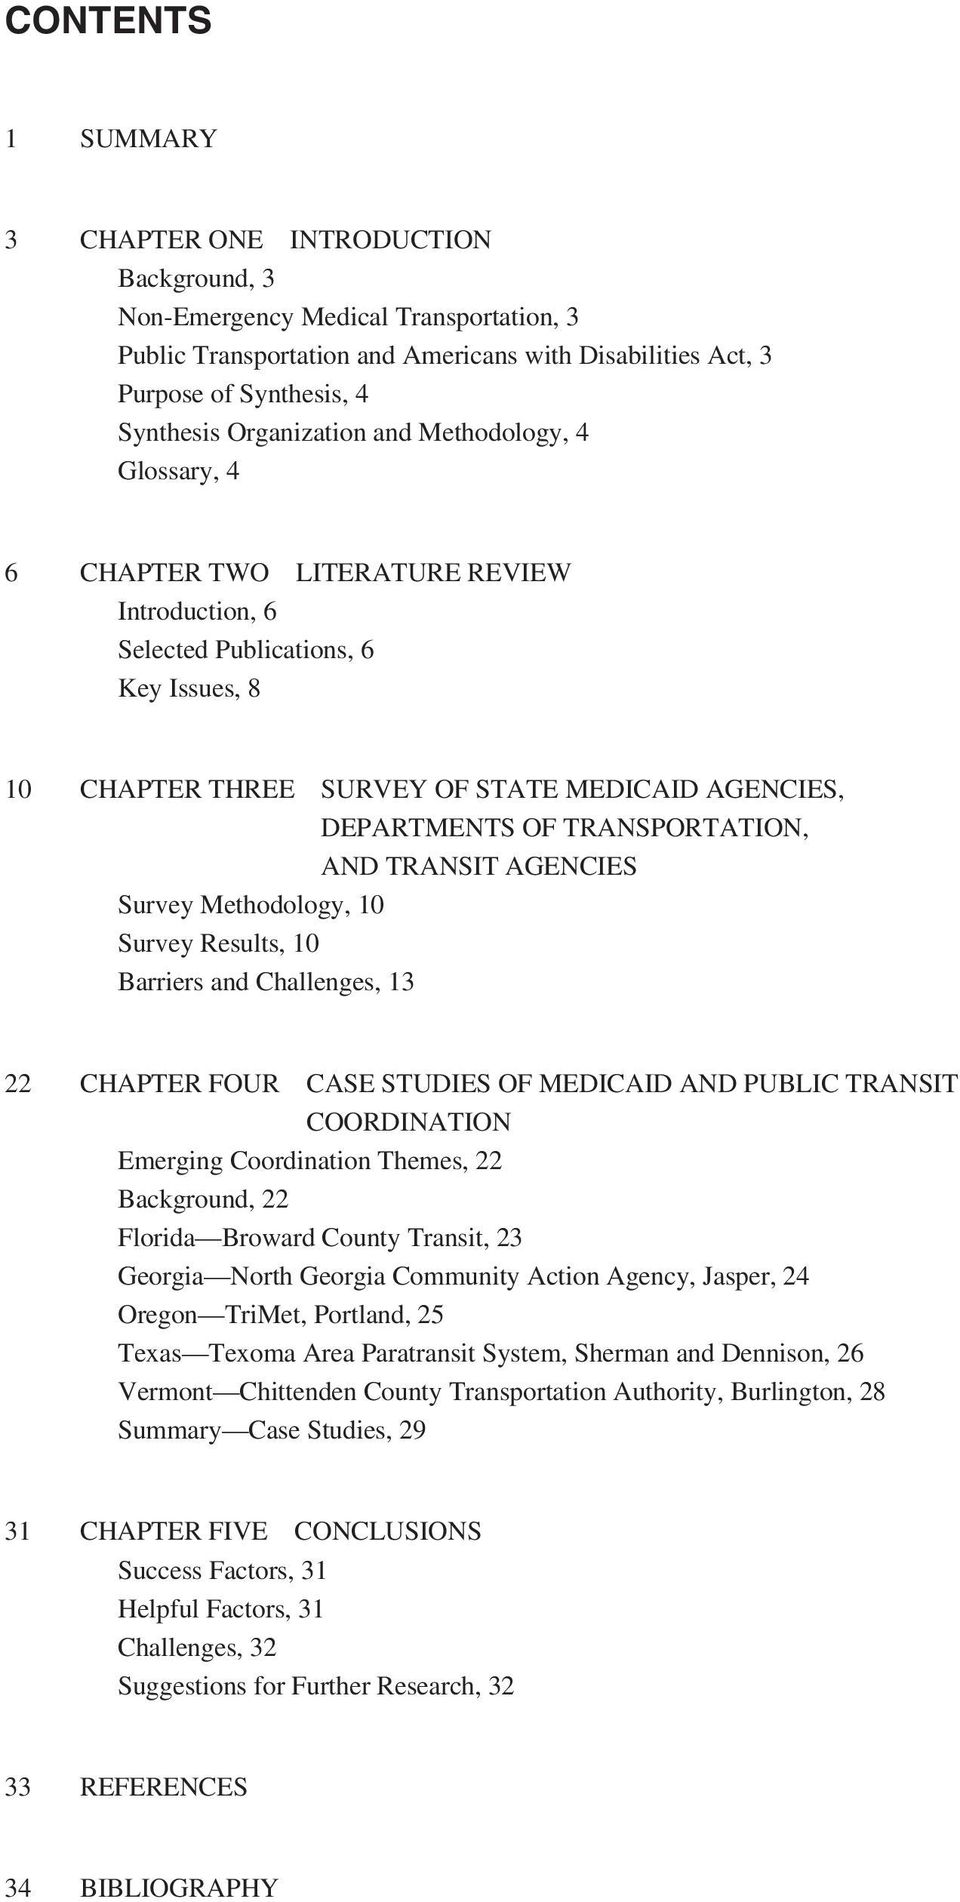 TRANSPORTATION, AND TRANSIT AGENCIES Survey Methodology, 10 Survey Results, 10 Barriers and Challenges, 13 22 CHAPTER FOUR CASE STUDIES OF MEDICAID AND PUBLIC TRANSIT COORDINATION Emerging